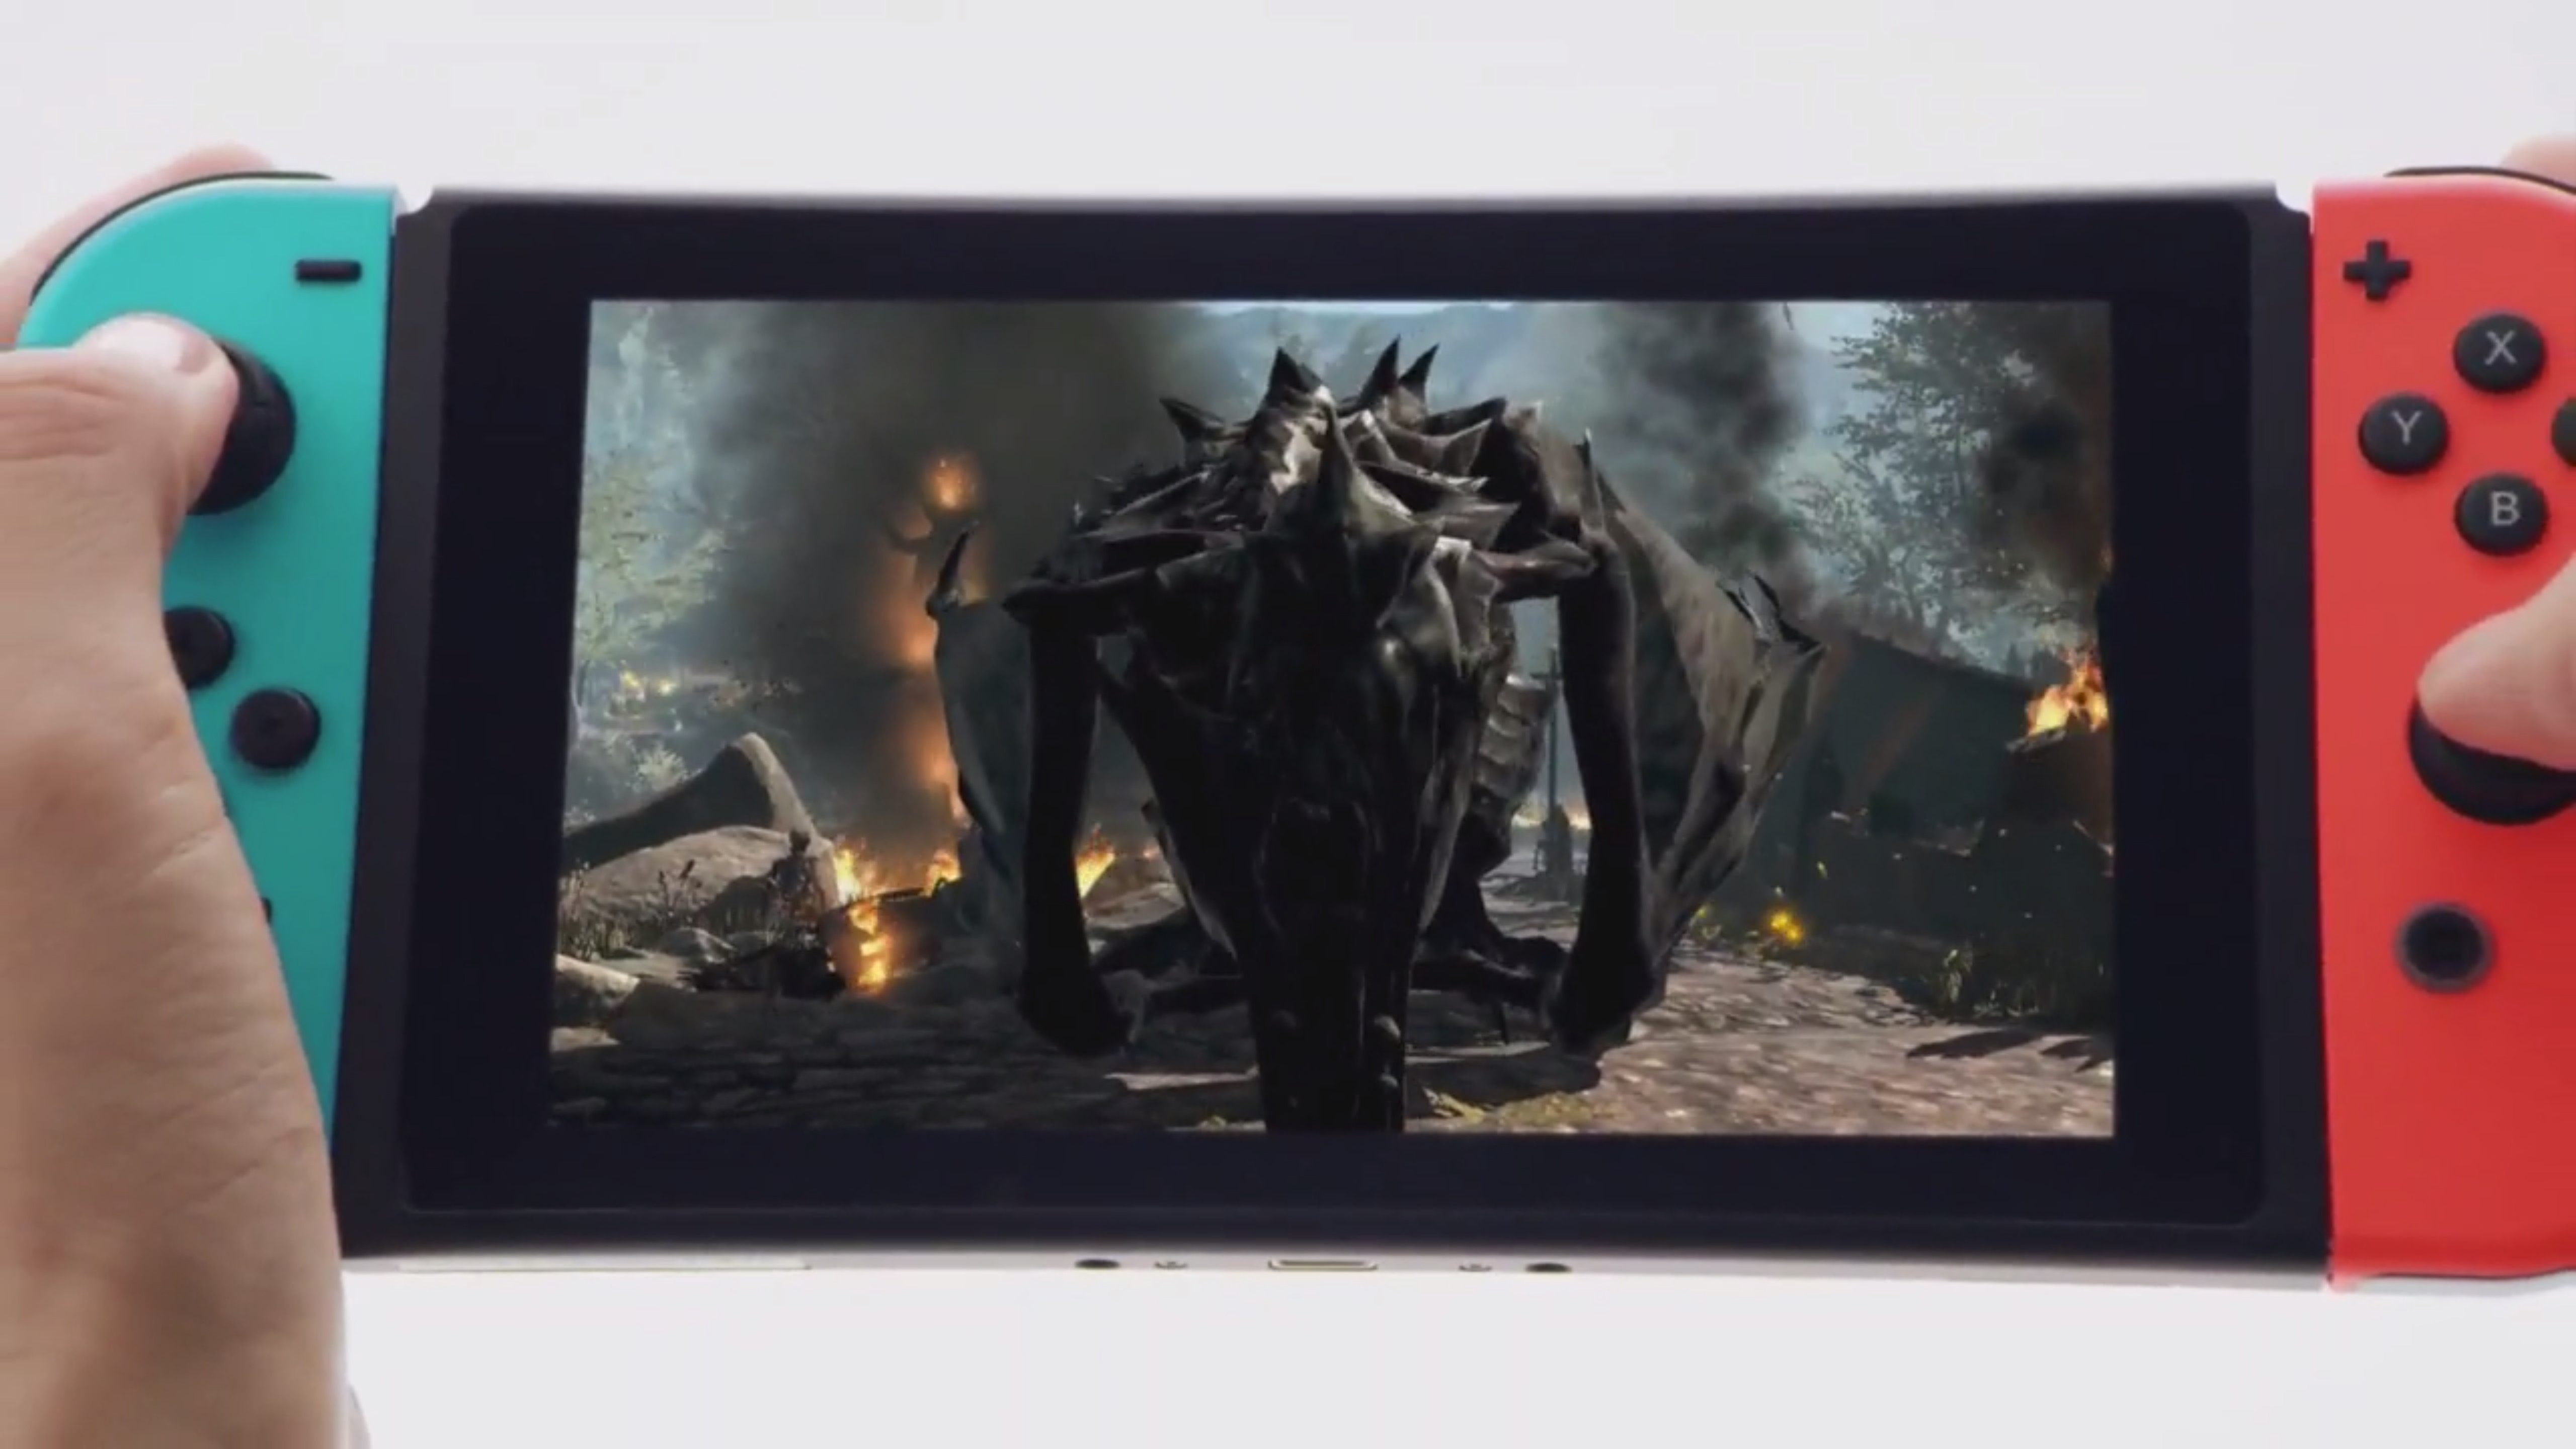 Nintendo Switch is getting The Elder Scrolls: Blades, and it's going